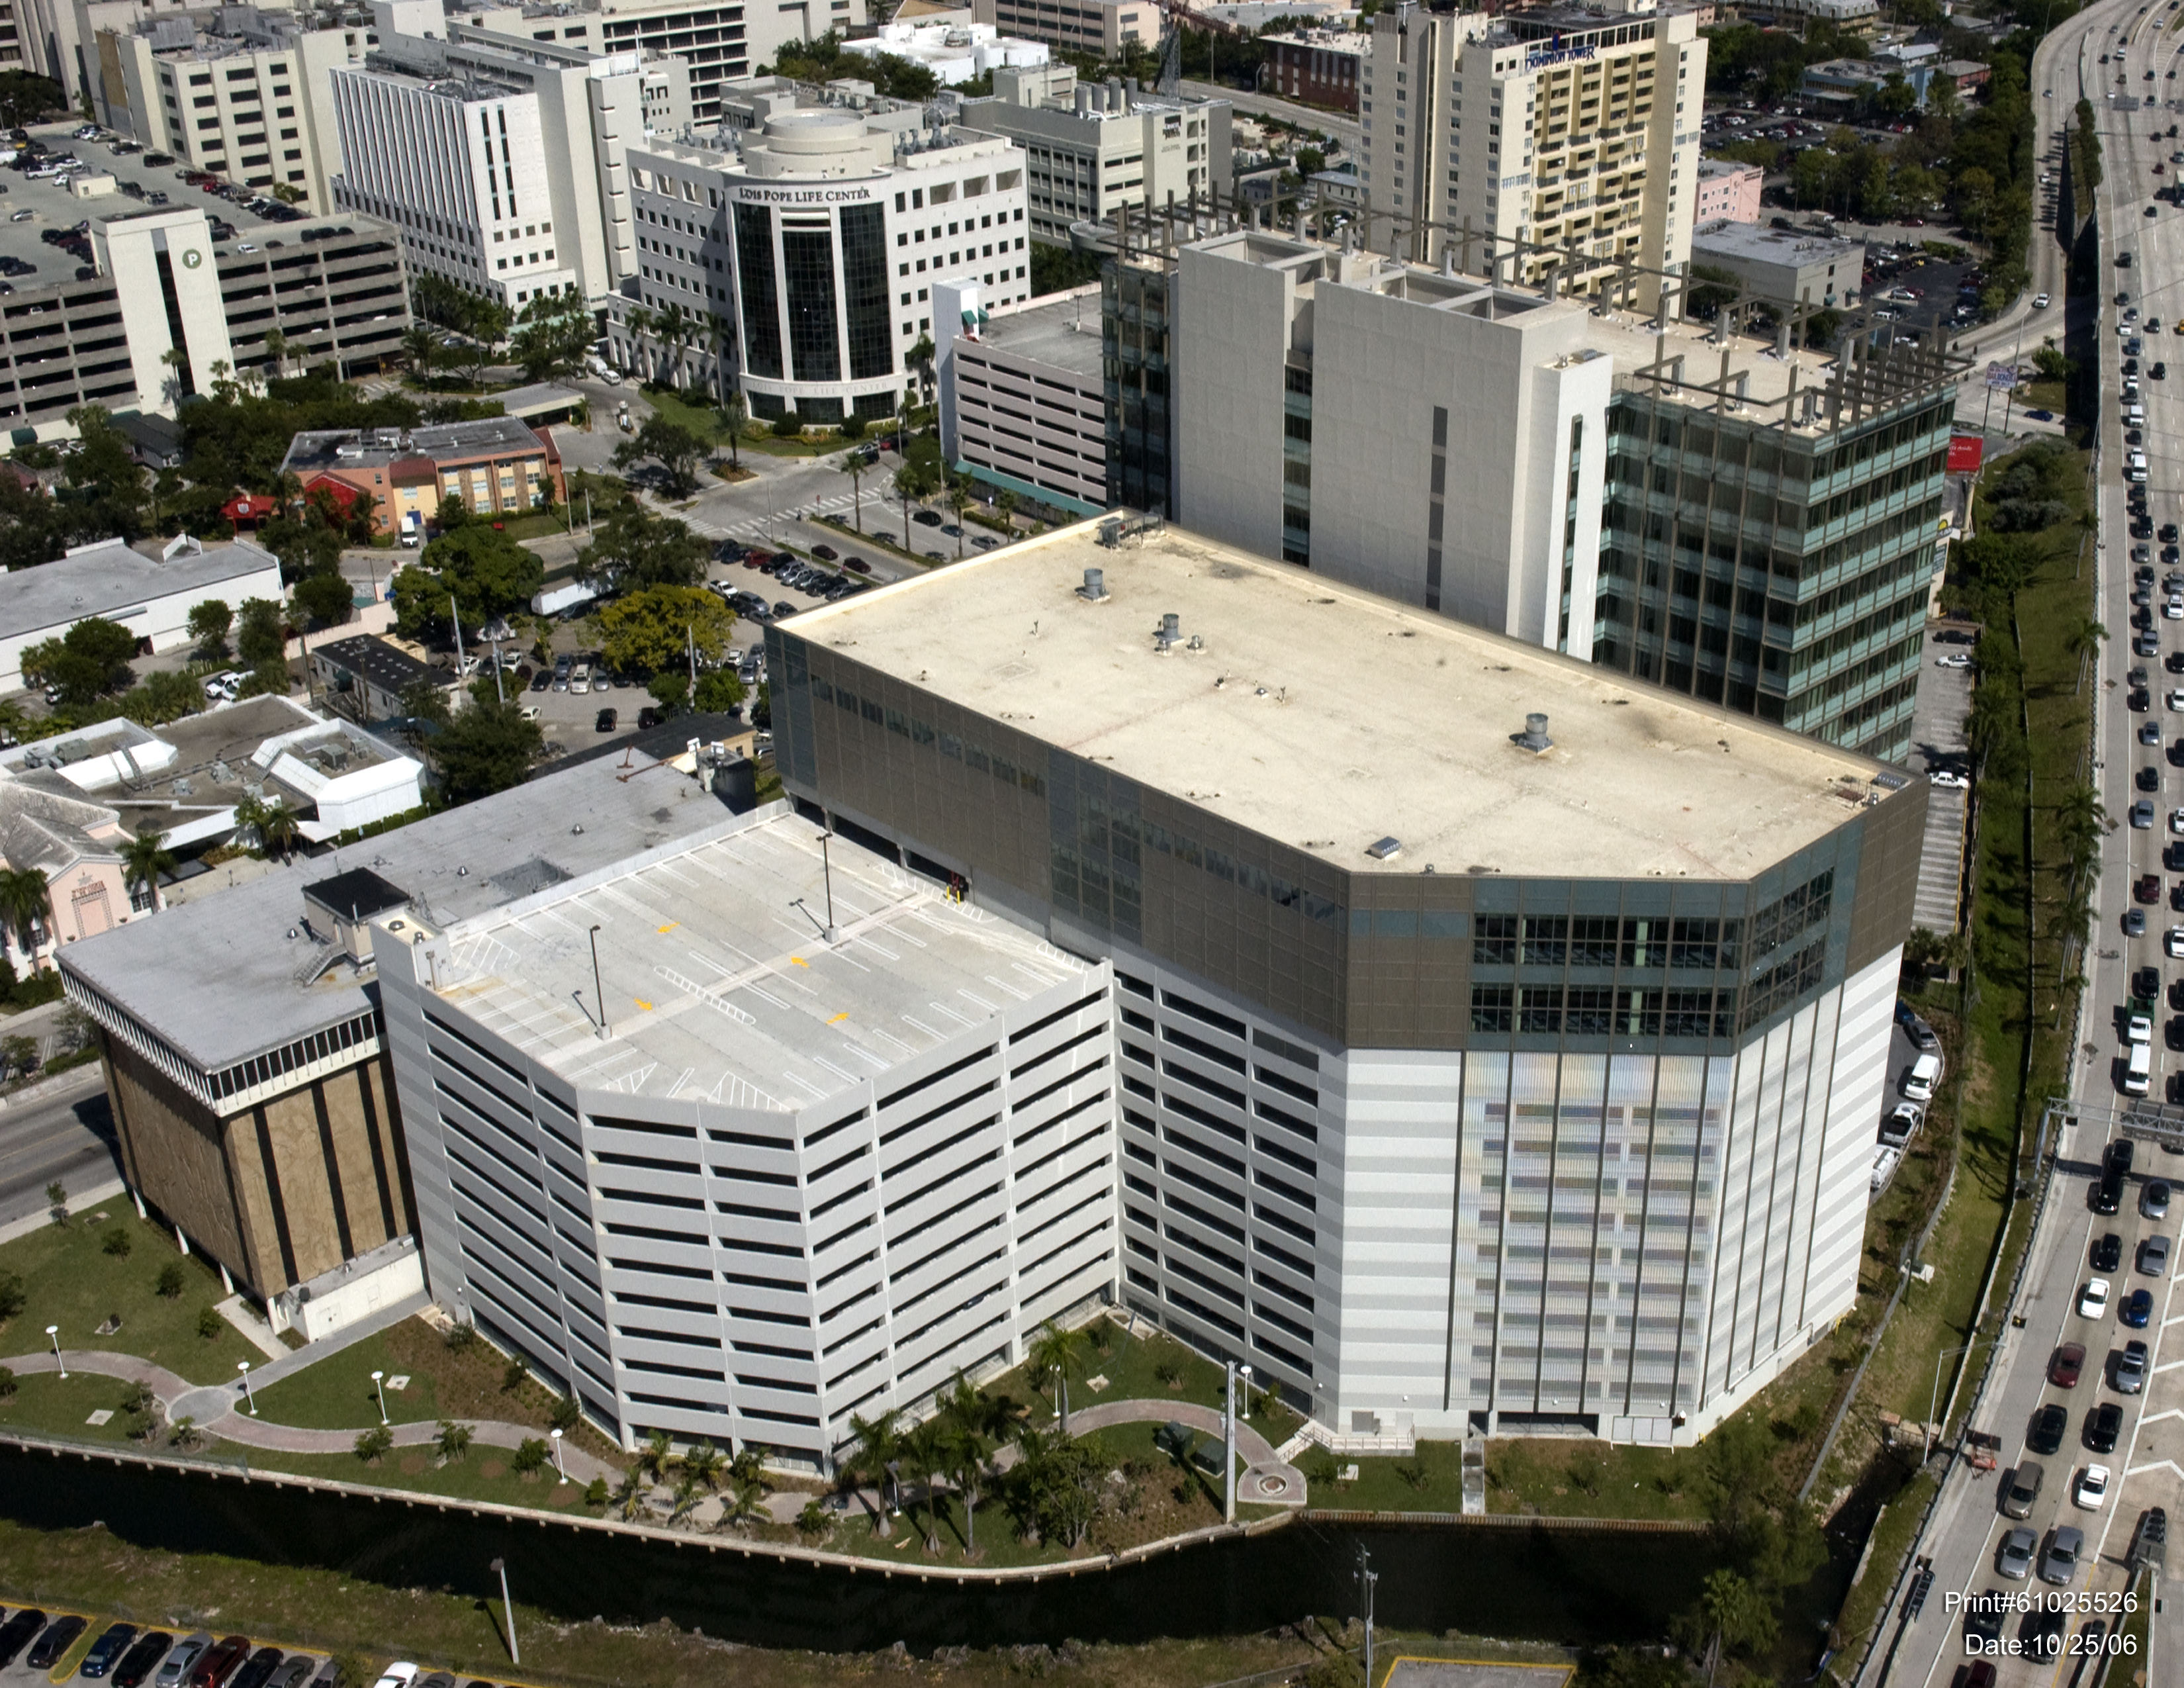 Miami_Parking structures_UM clinical